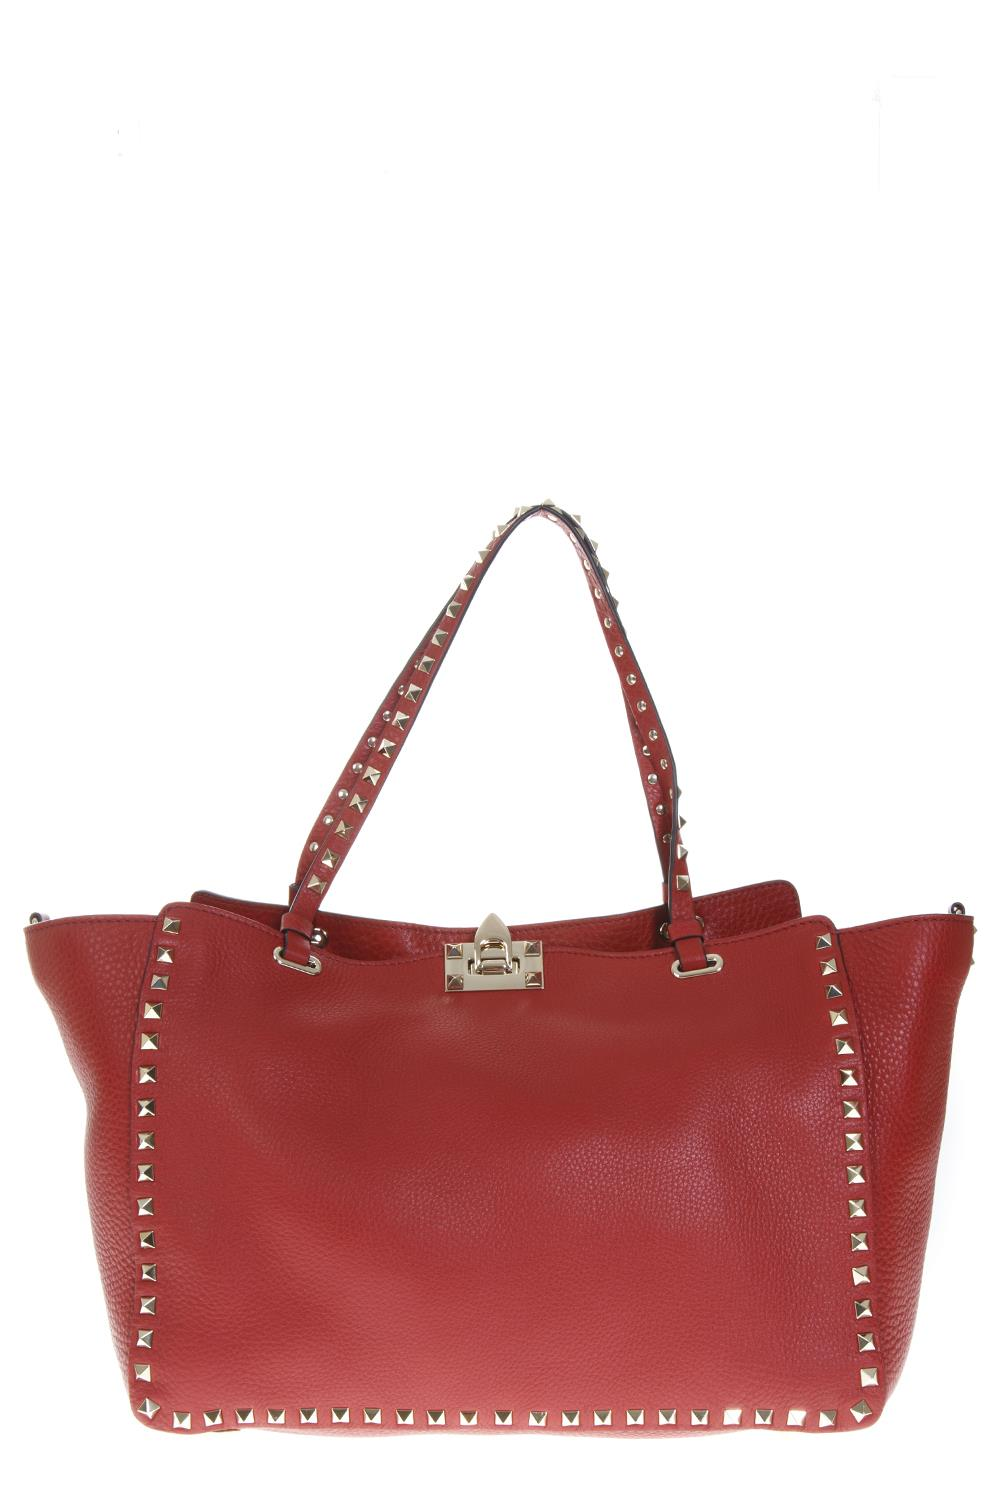 a38eb31c500 ROCKSTUD TRAPEZE RED LEATHER TOTE BAG FW 2018 - VALENTINO GARAVANI -  Boutique Galiano